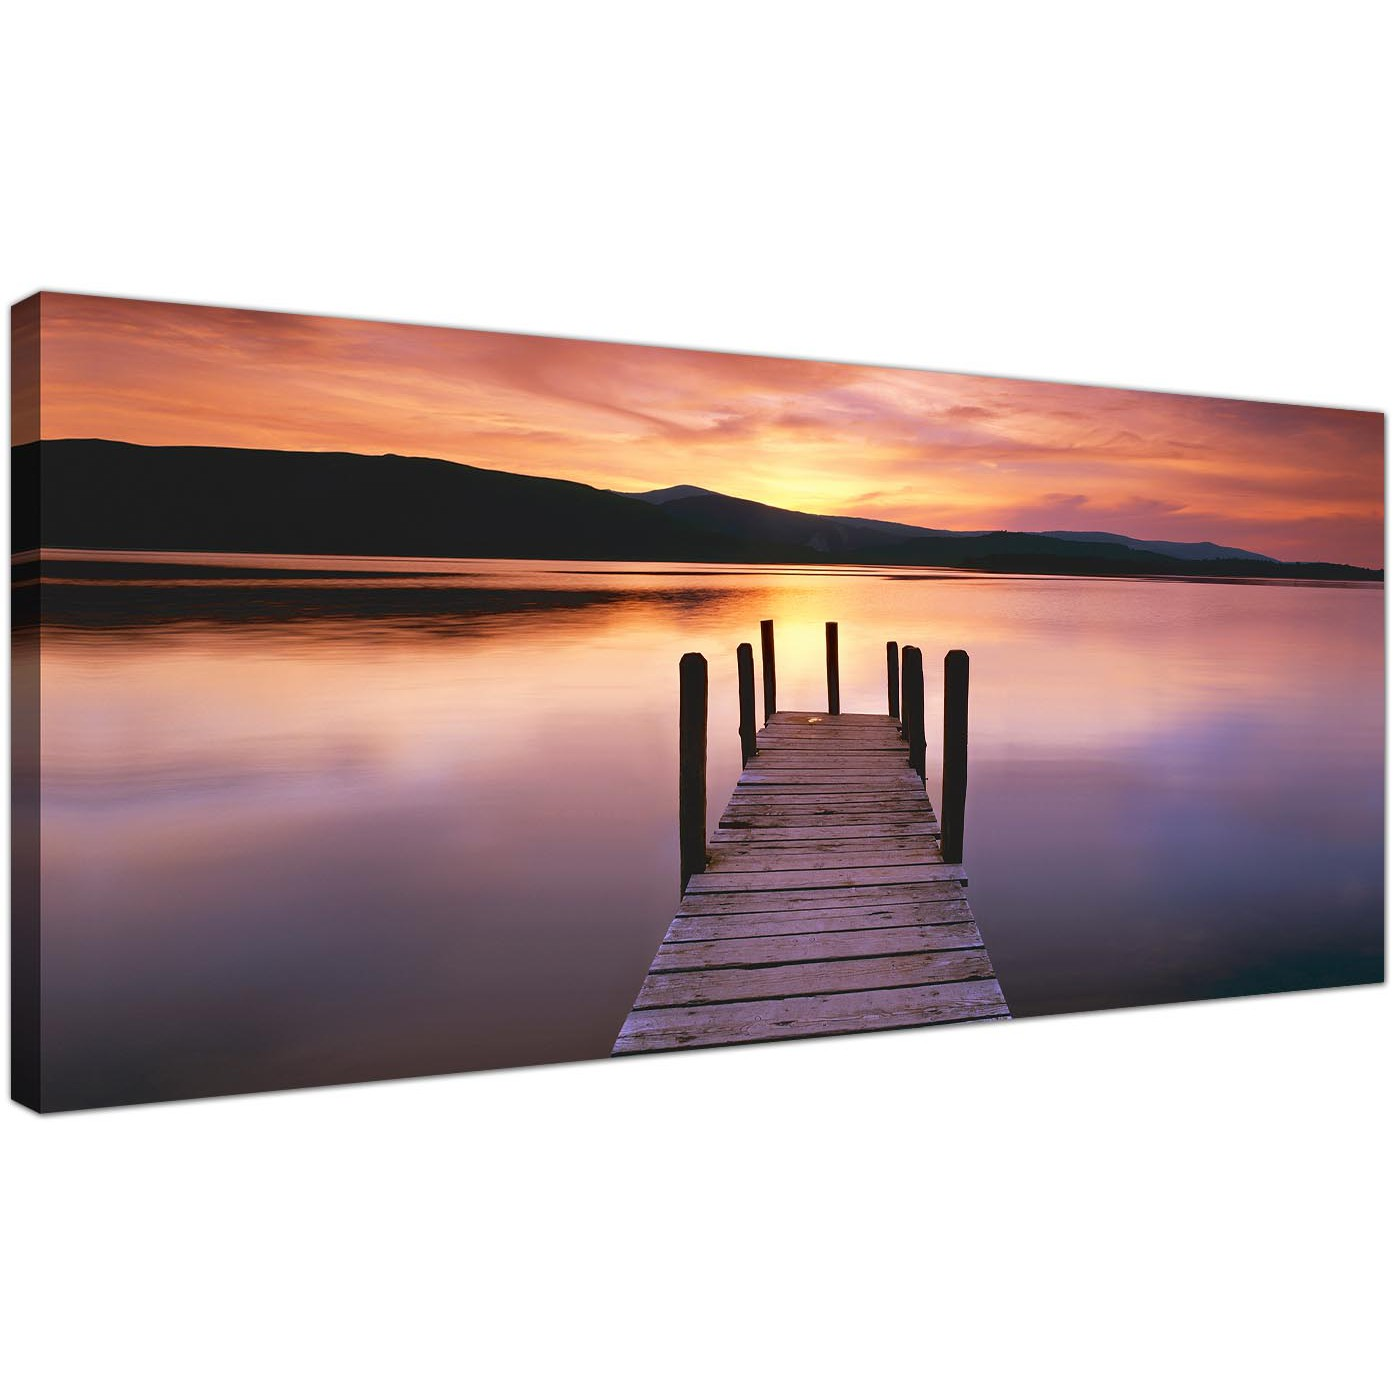 Large Canvas Prints Cheap Wide Canvas Wall Art Of A Lake Sunset For Your Living Room